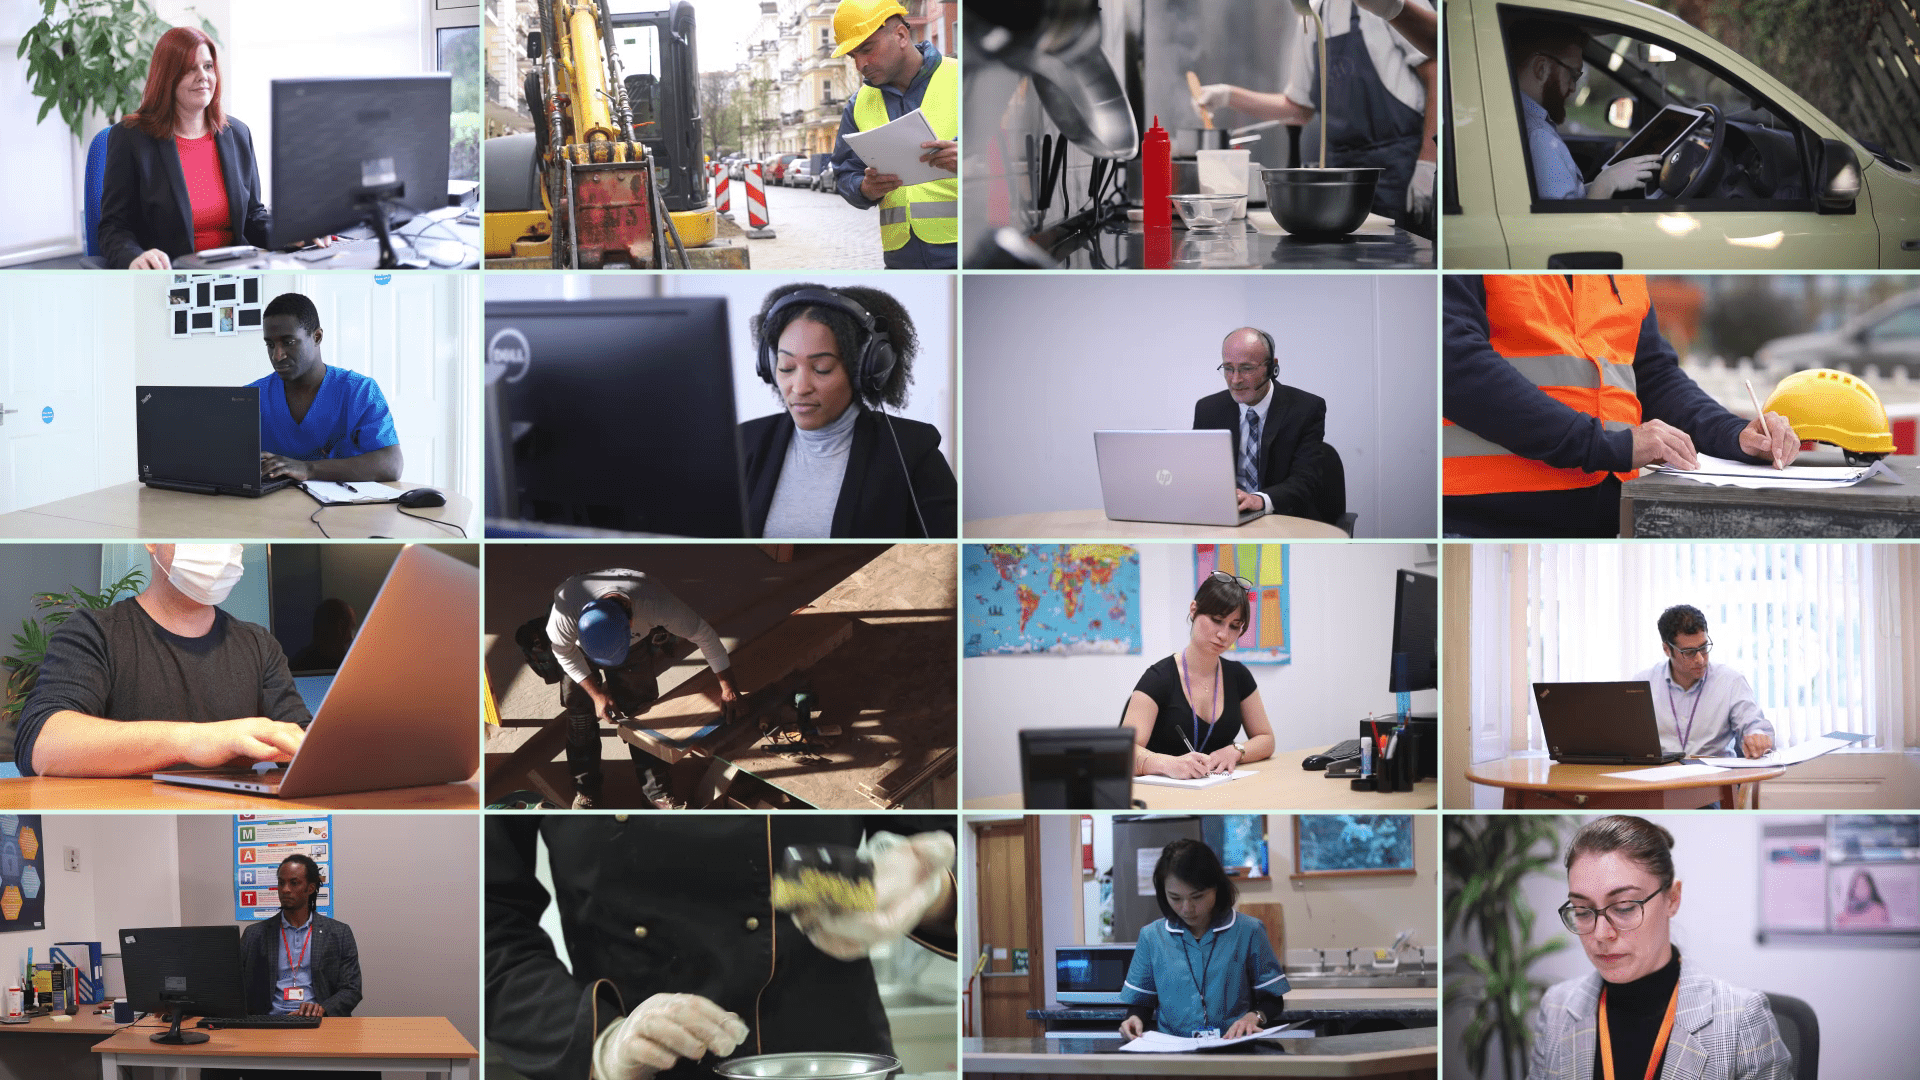 images of people at work from different industries, taken from iHASCO's online training course.